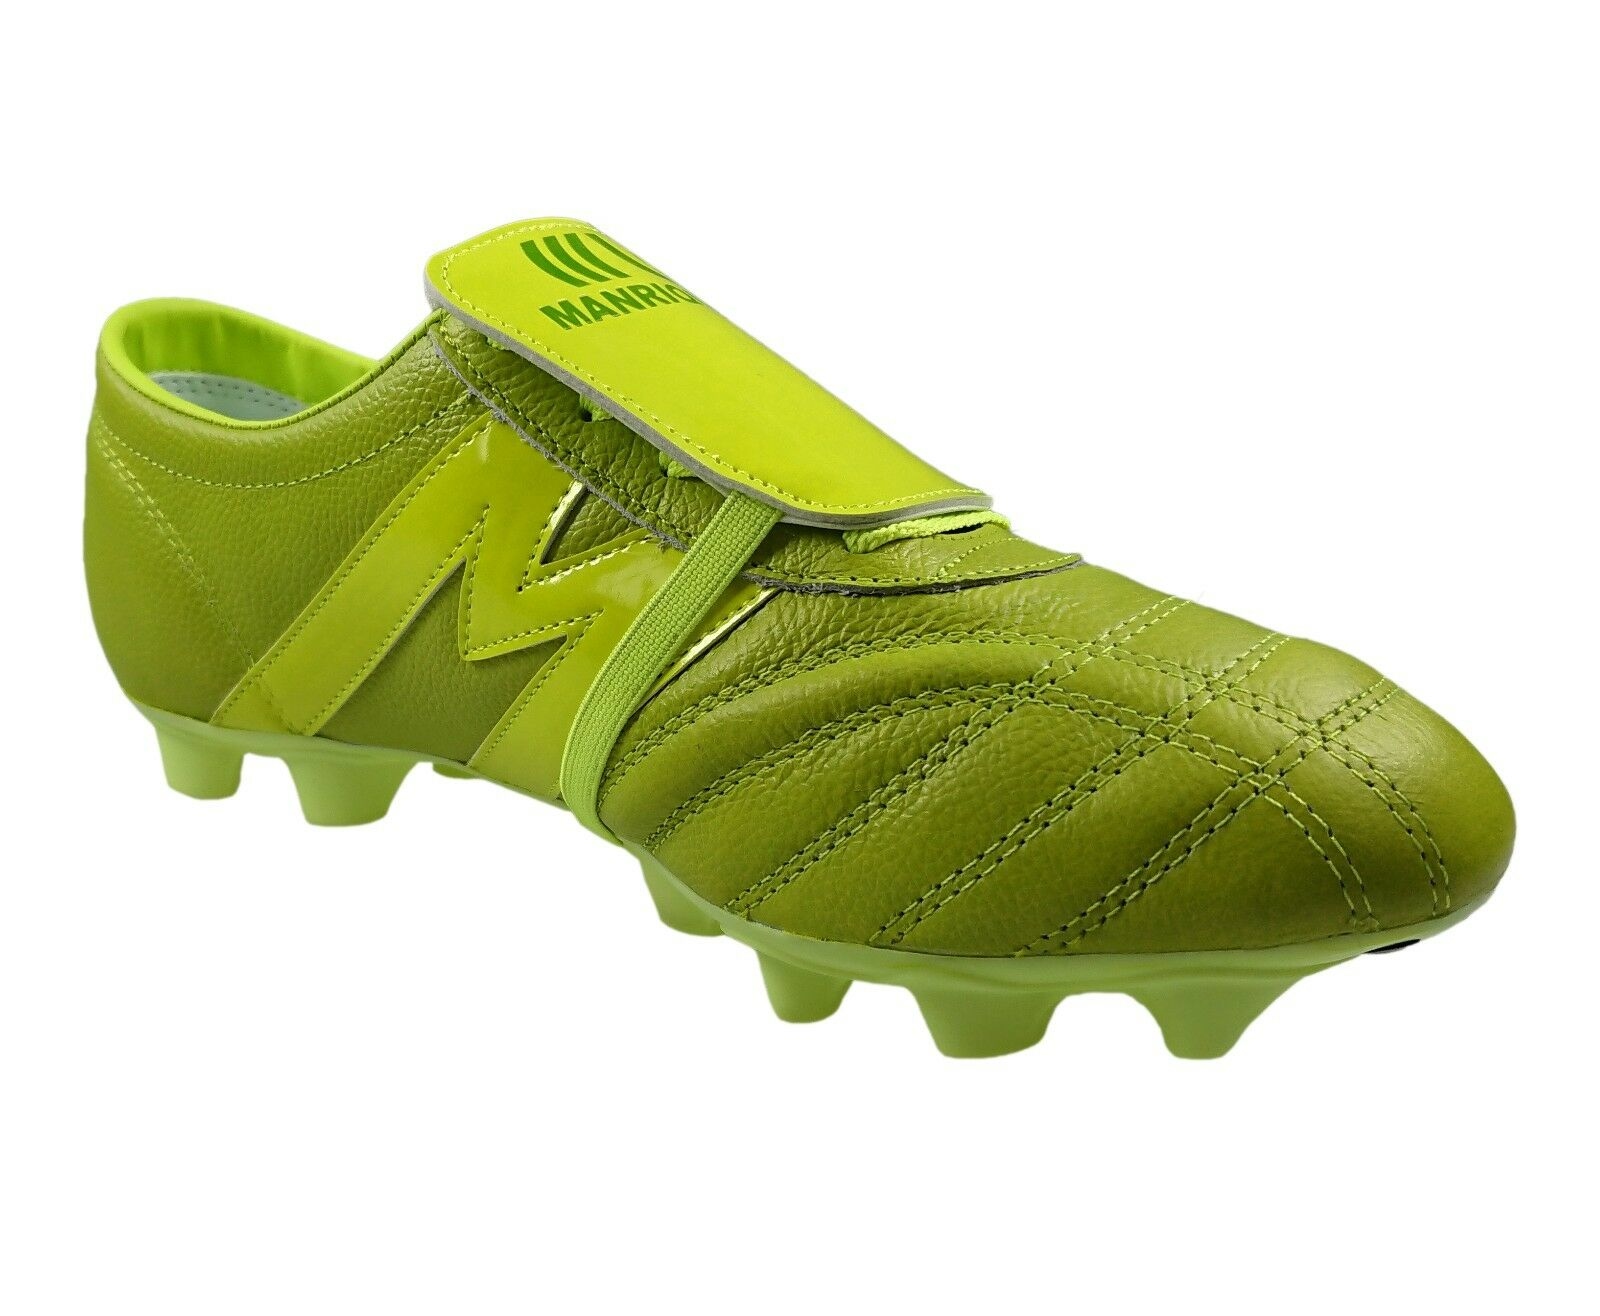 7bf02cf921f ... Soccer Cleats Manriquez MID MID MID SX Total Green Genuine Leather  5e7e65 ...